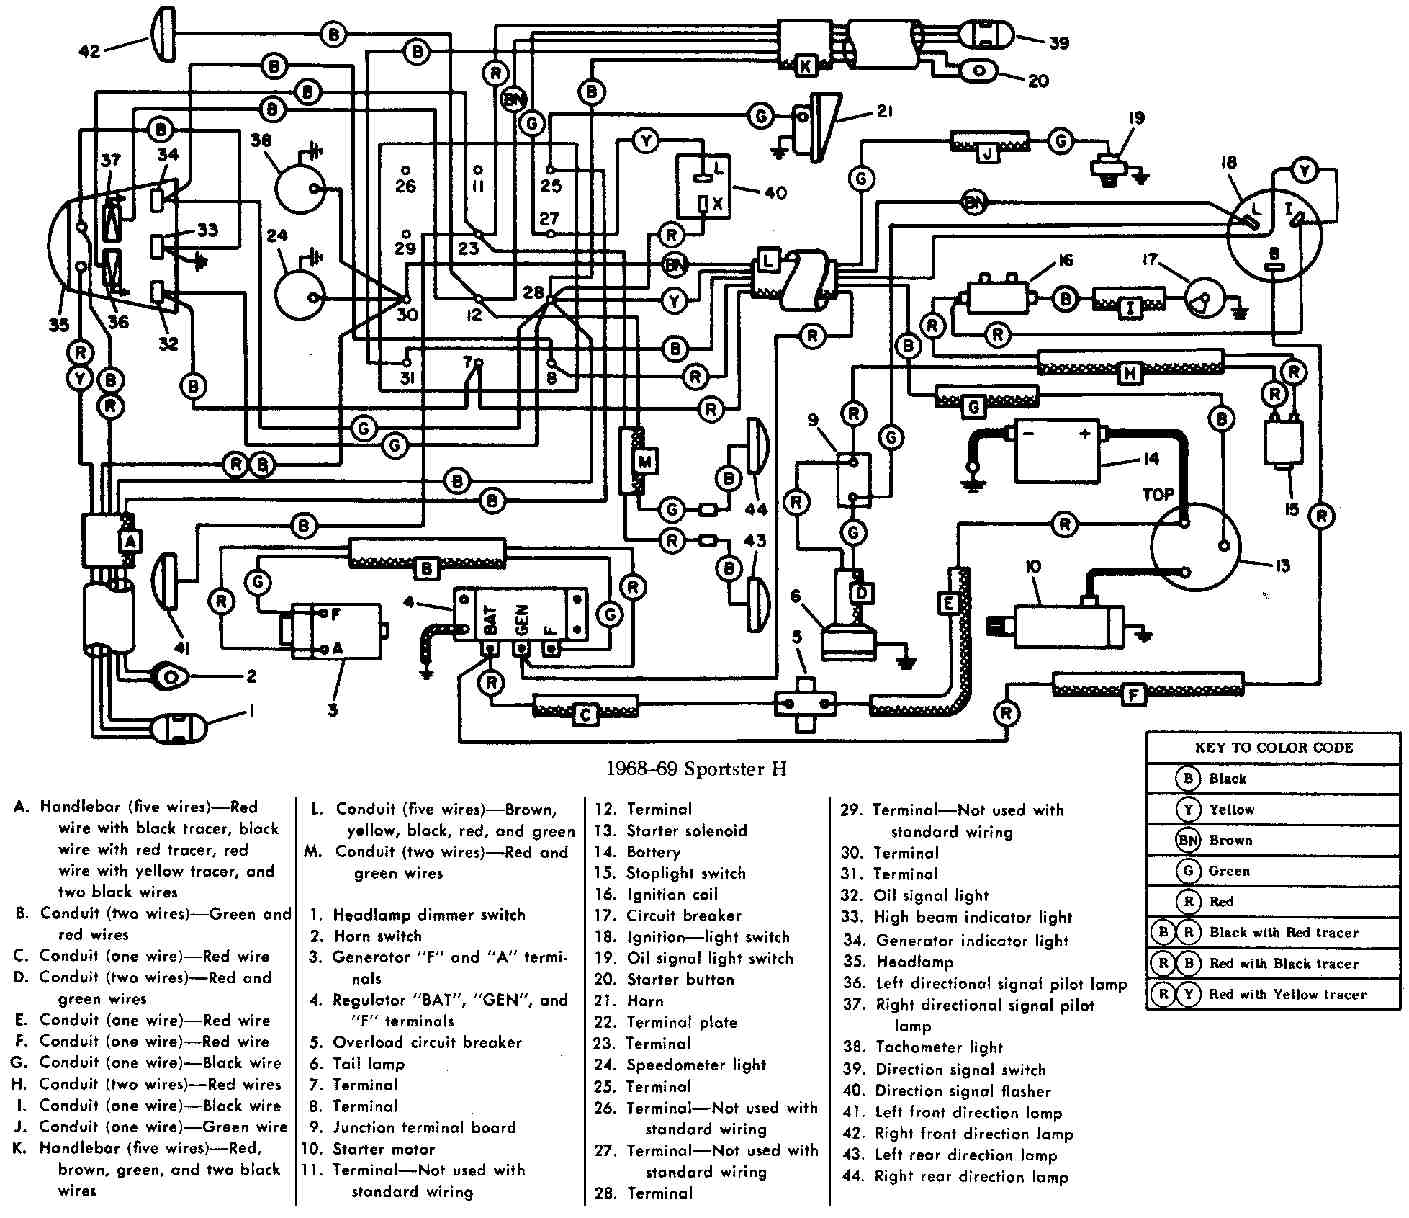 1994 Cadillac Deville Radio Wiring Diagram Will Be 94 Engine Wire Harley Davidson Sportster 1968 1969 Electrical 2000